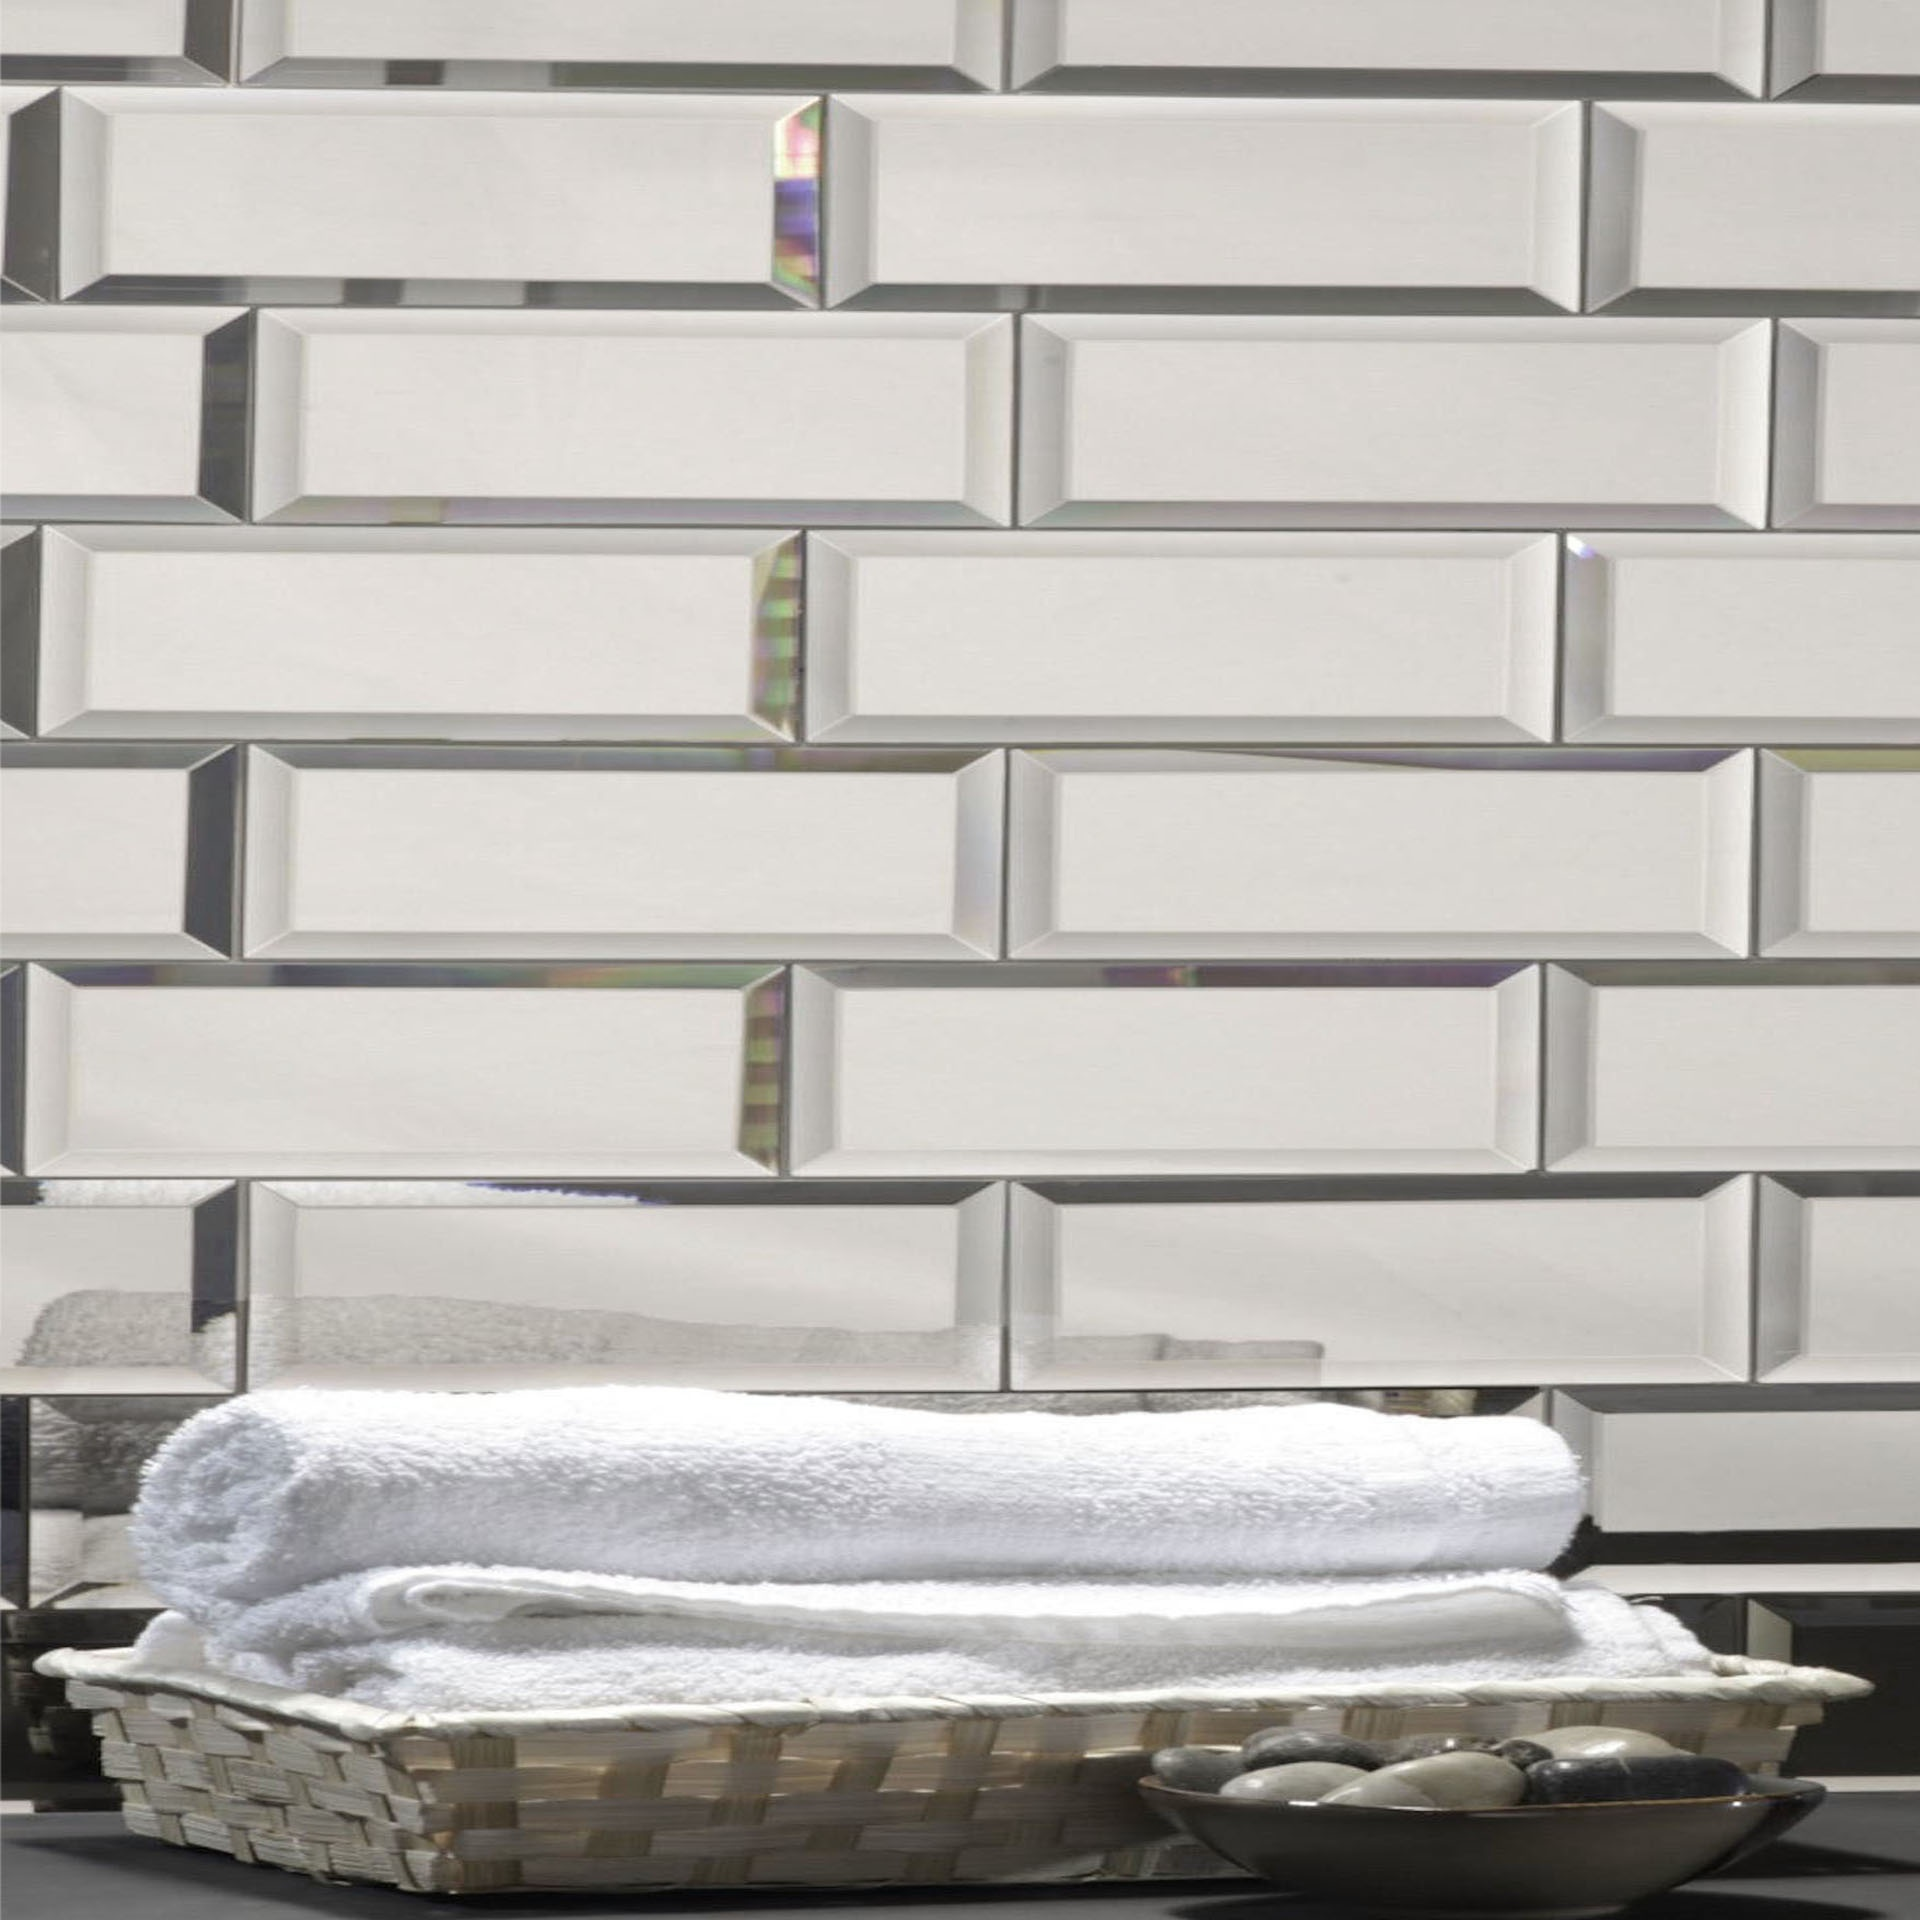 "Reflections 3"" x 12"" Glossy Silver Mirror Subway Backsplash Wall Tile"